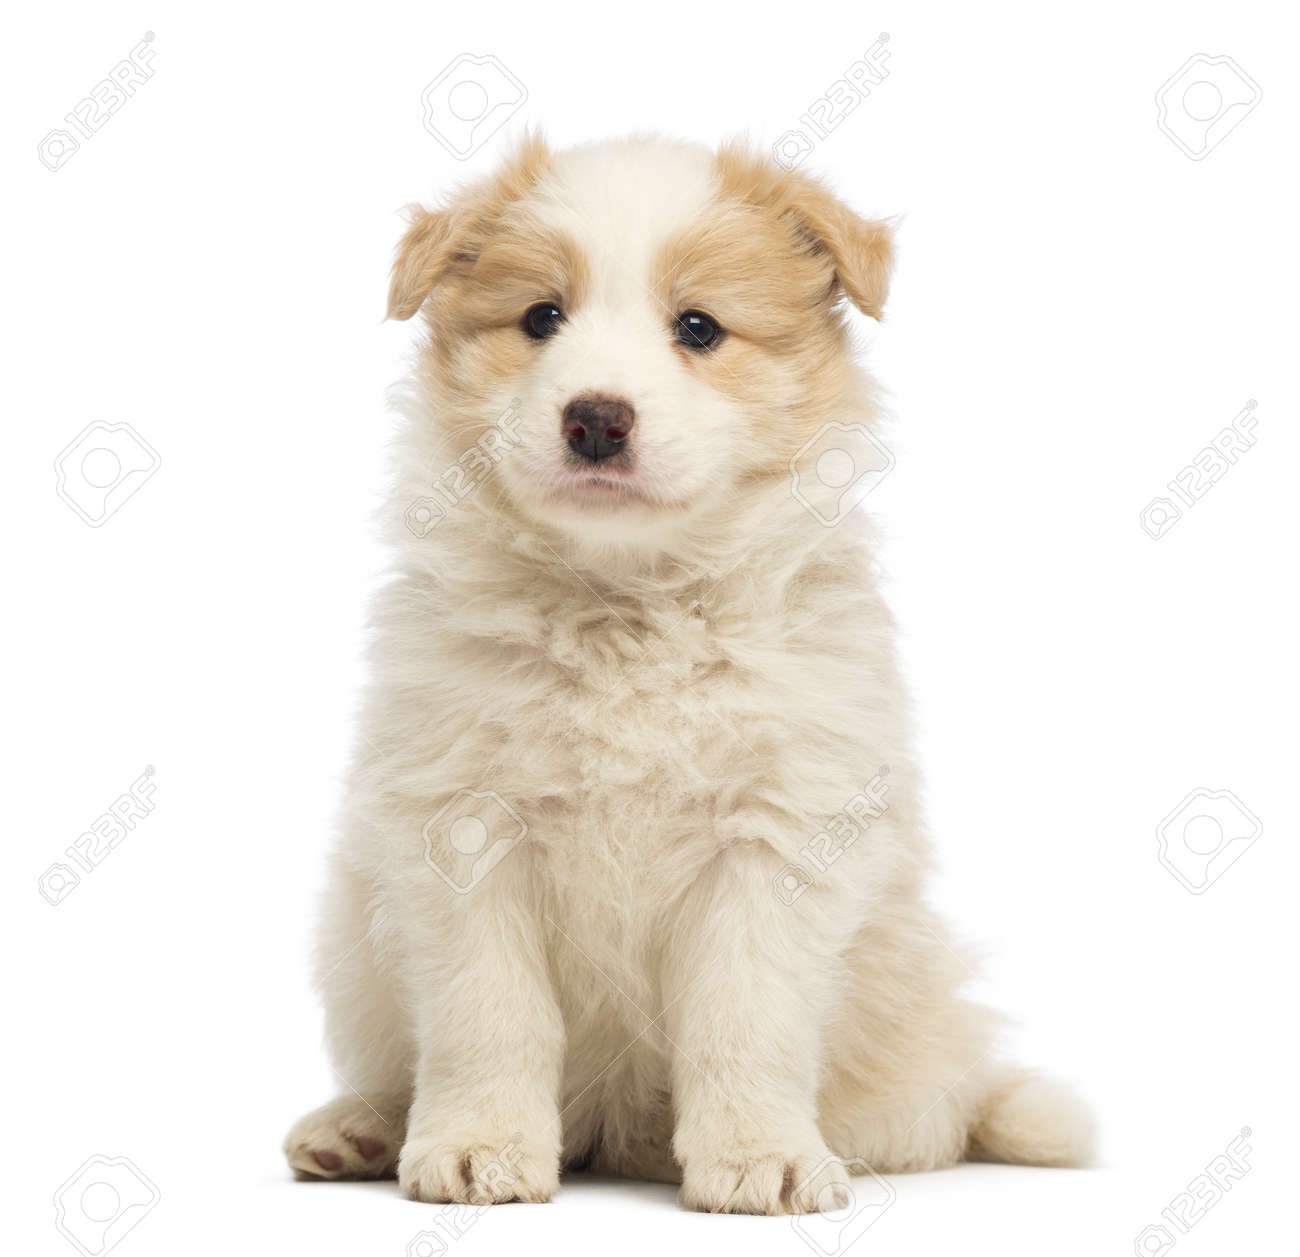 Border Collie Puppy 6 Weeks Old Sitting In Front Of White Background Stock Photo